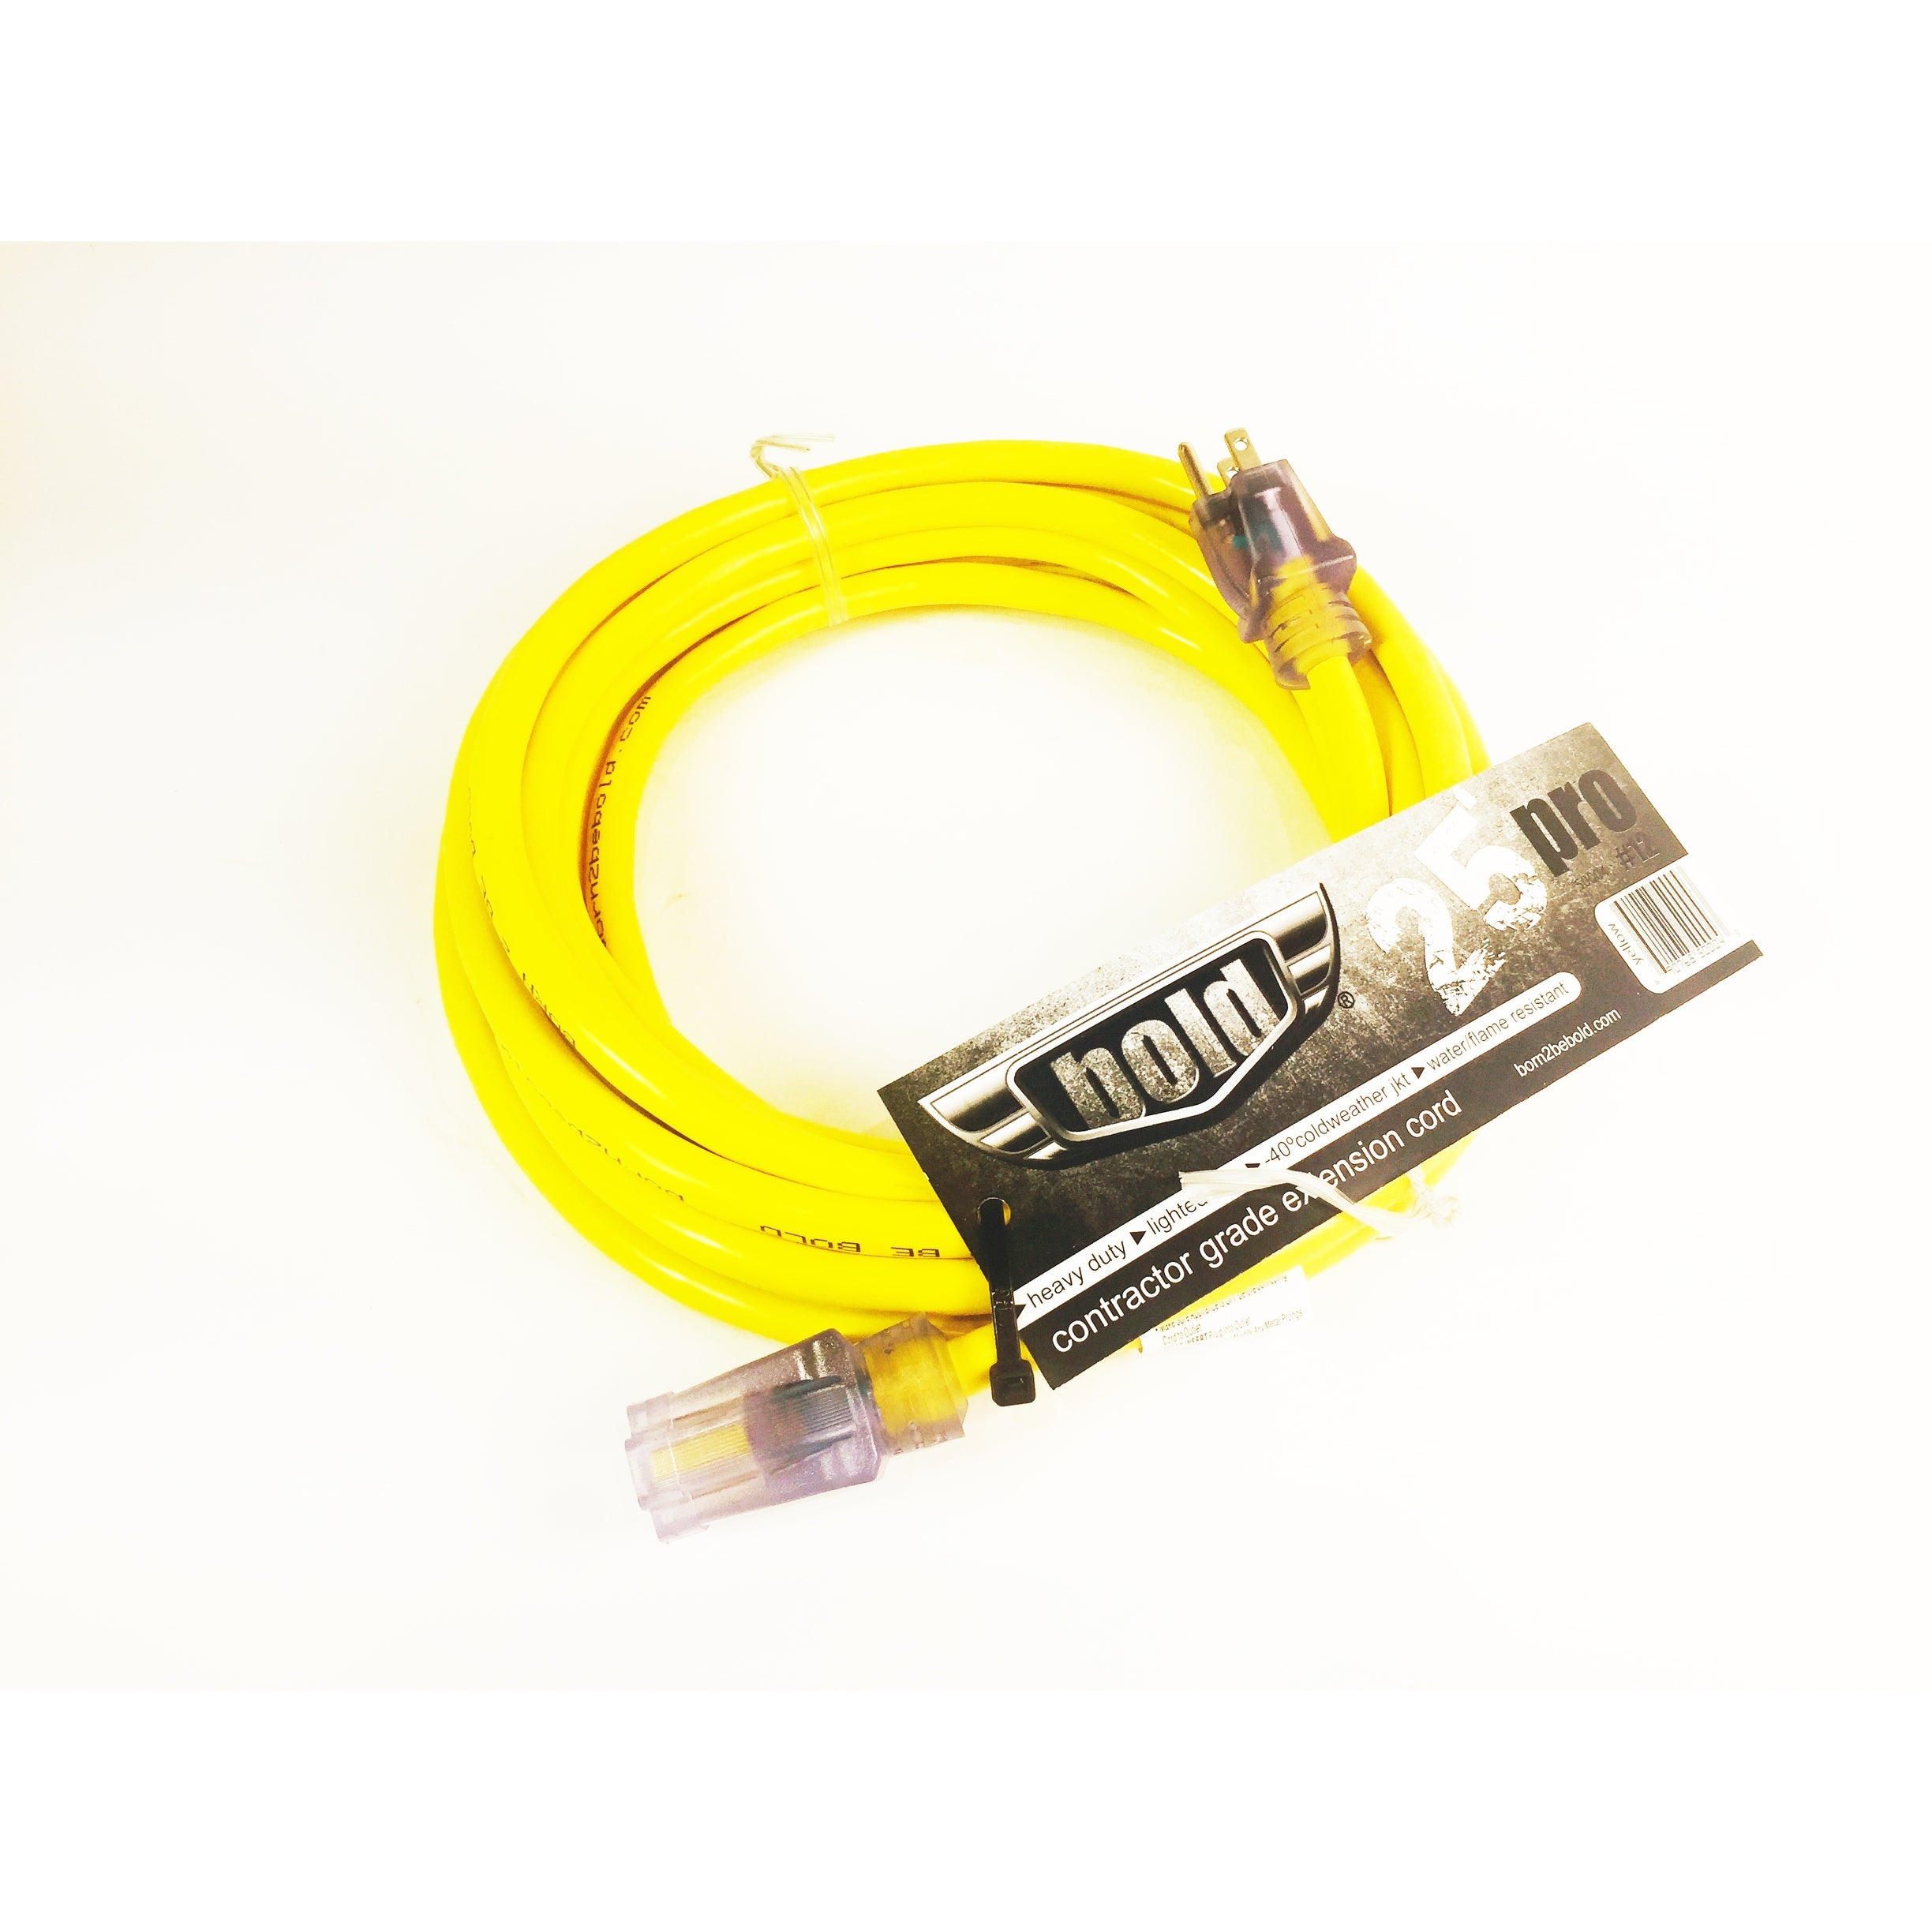 15A-125V 12//3 25/' HD EXTENSION CORD LIGHTED END FREE SHIP